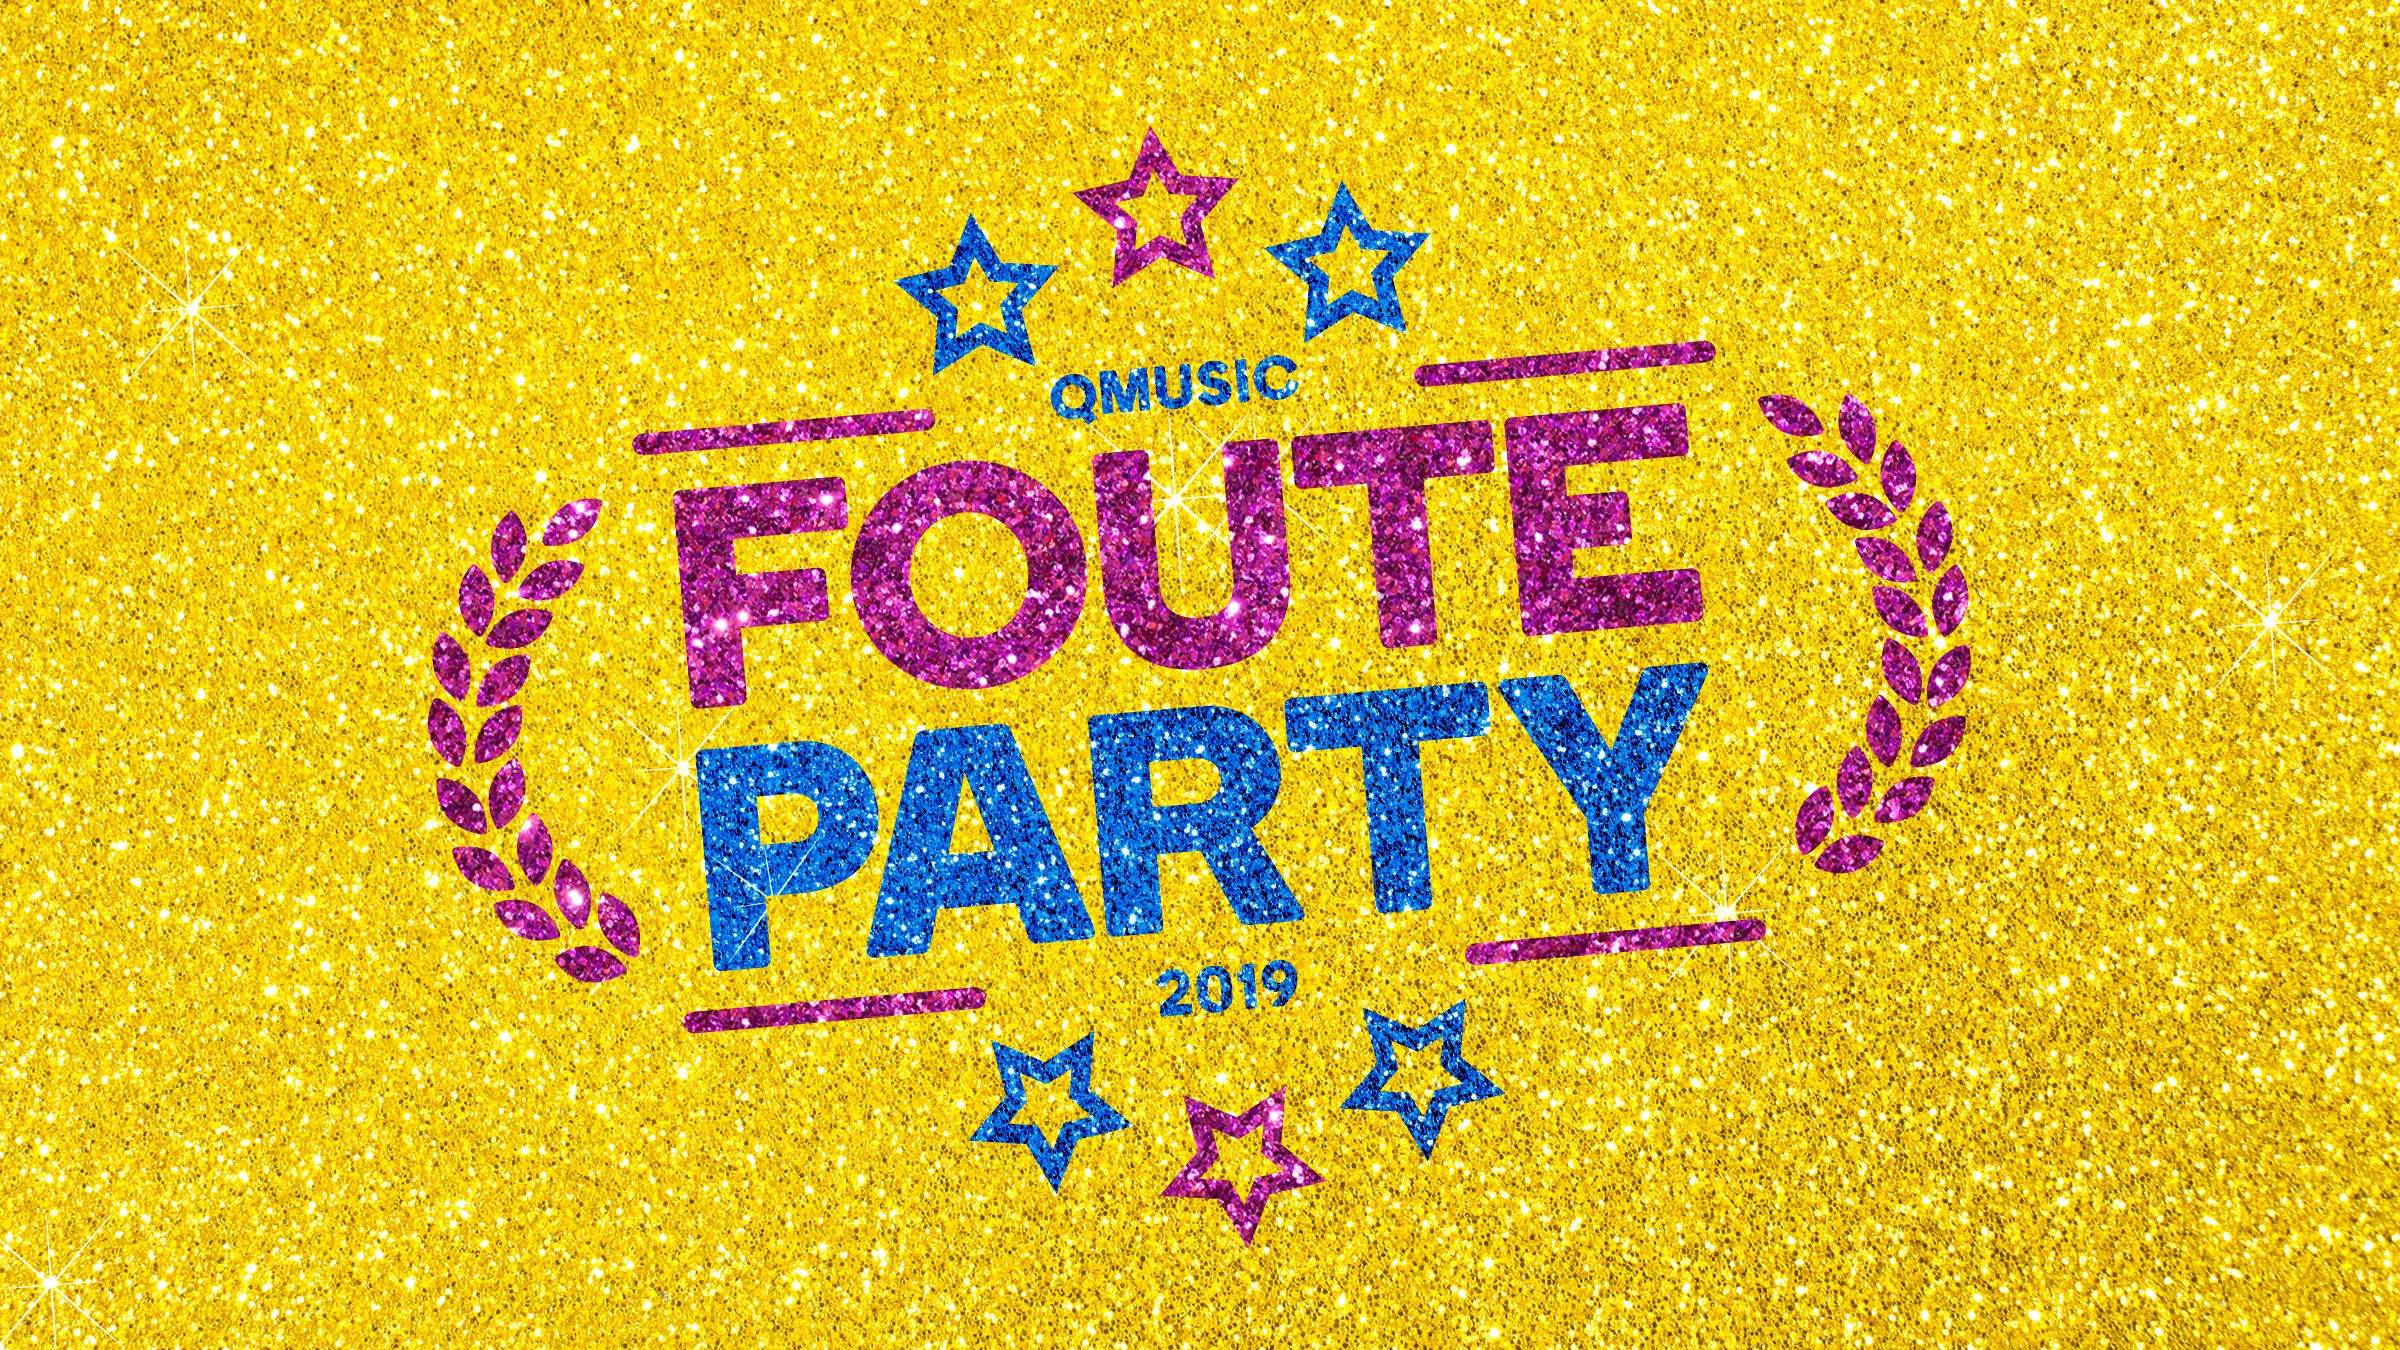 Qmusic teaser fouteparty2019 sales